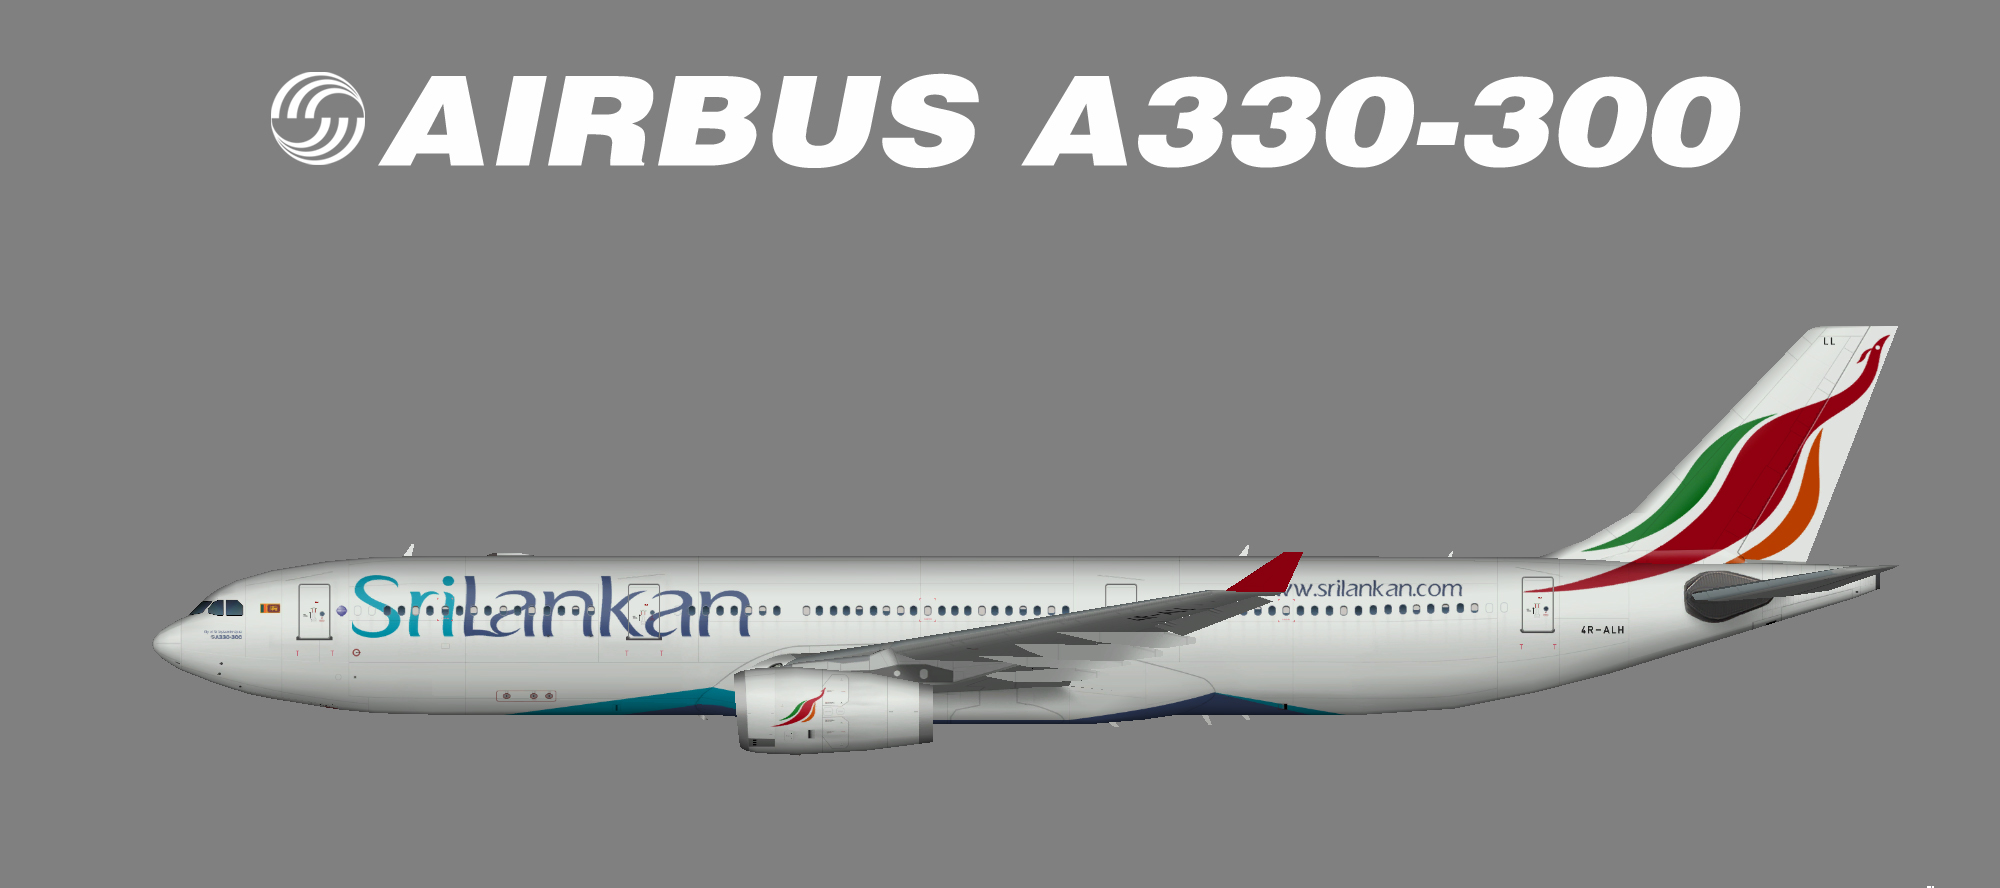 SriLankan Airlines Airbus A330-300